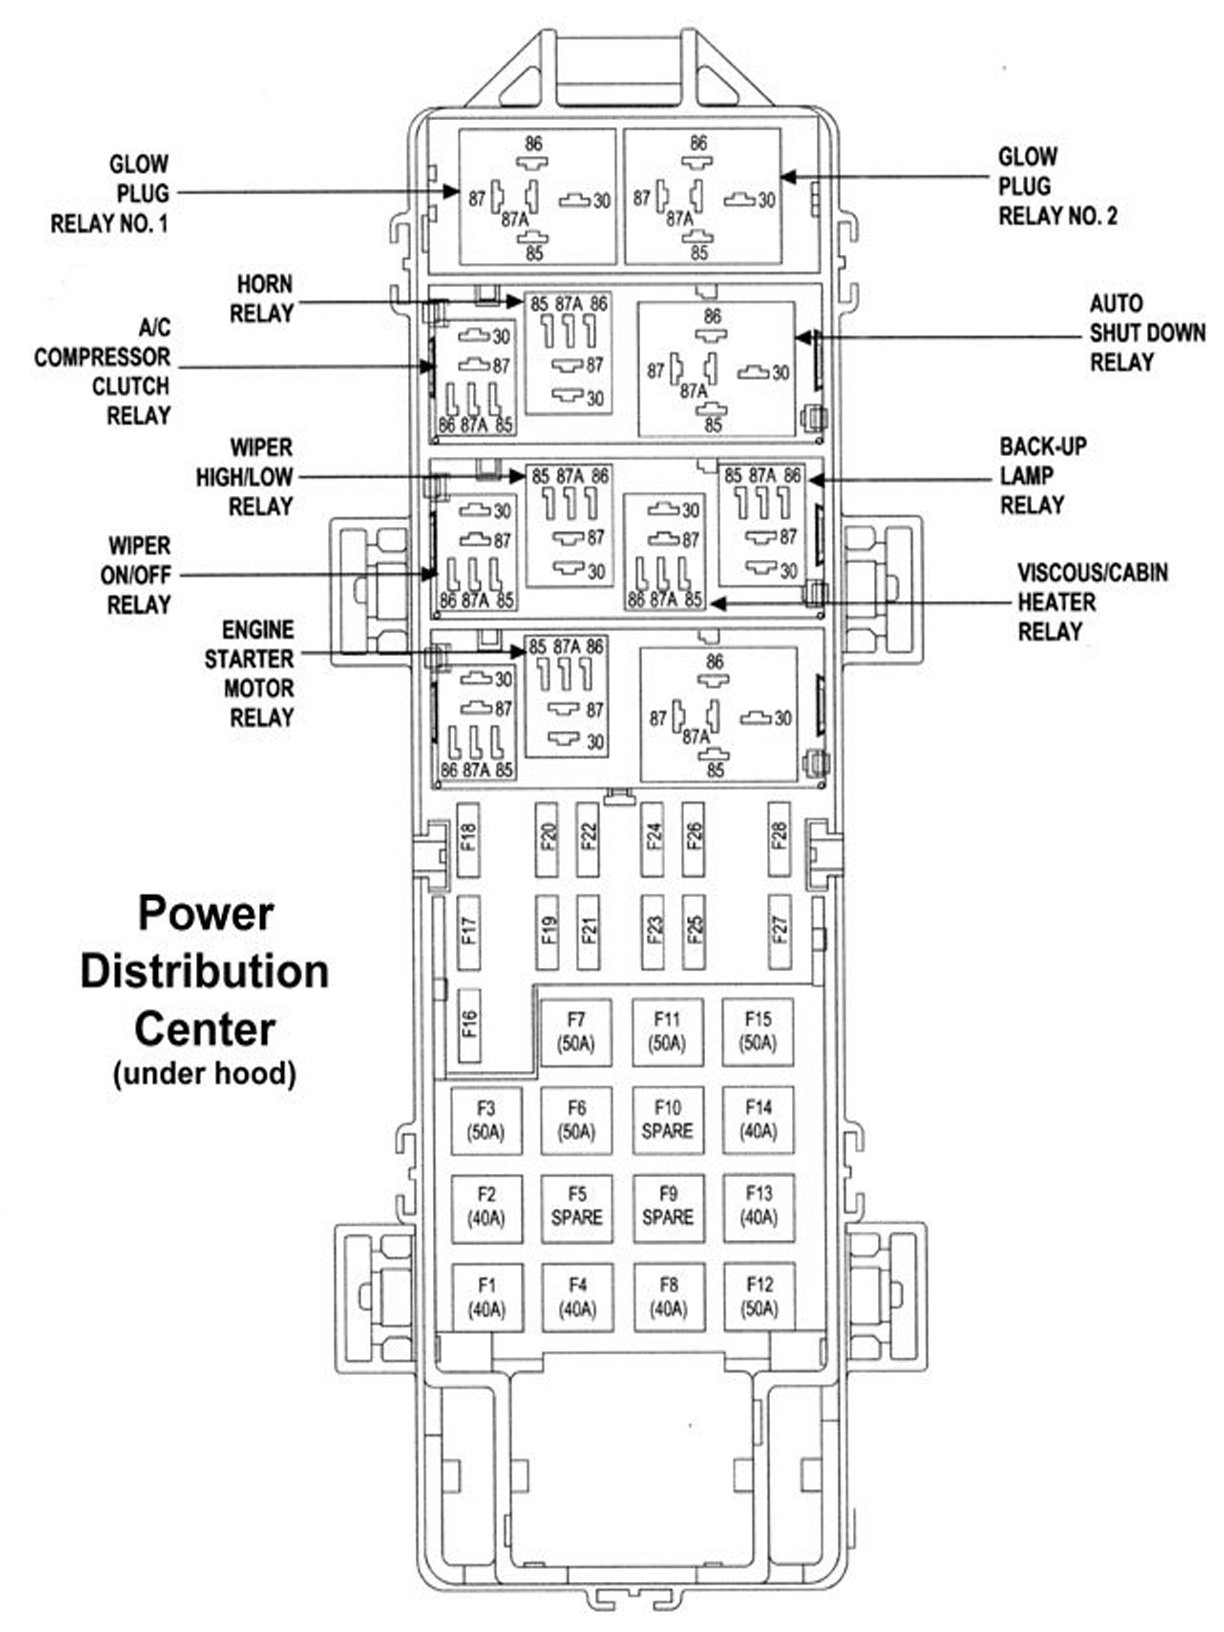 diagram 2003 jeep grand cherokee laredo fuse diagram full version hd quality fuse diagram b pecosdiagrams officinadelcanto it diagram 2003 jeep grand cherokee